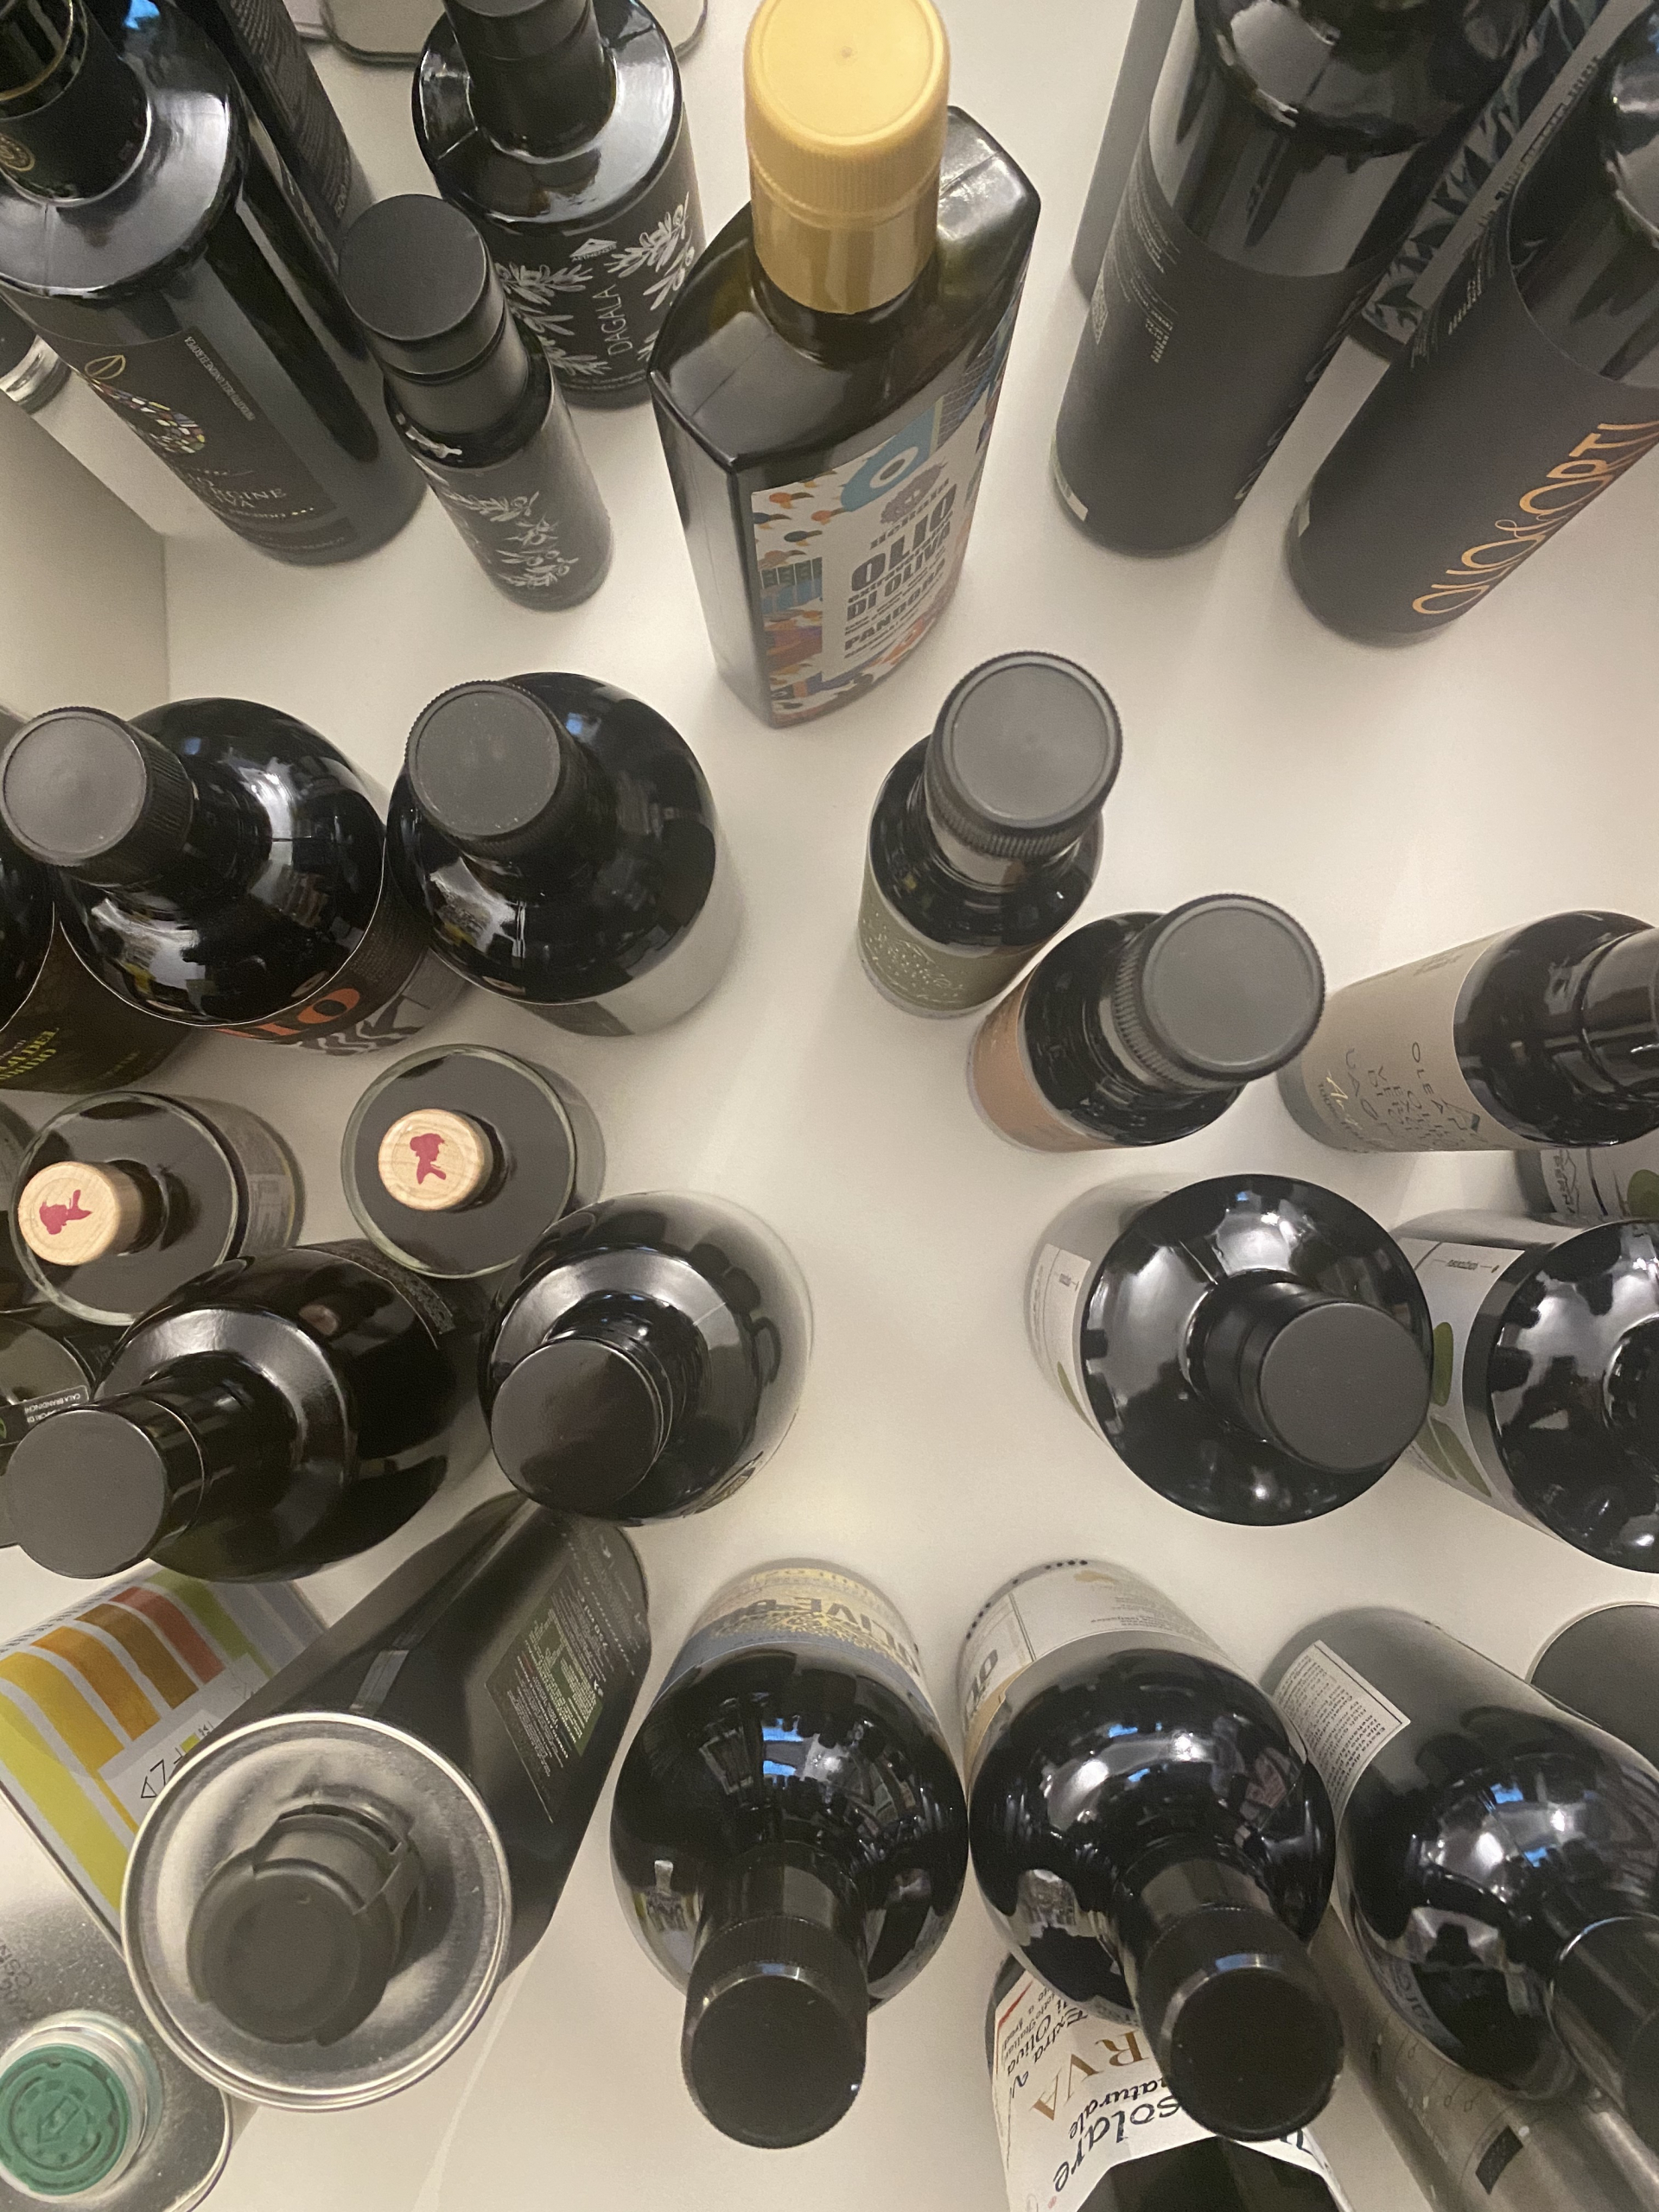 Olive Oil stocked in Italy. Update of 31 May 2021